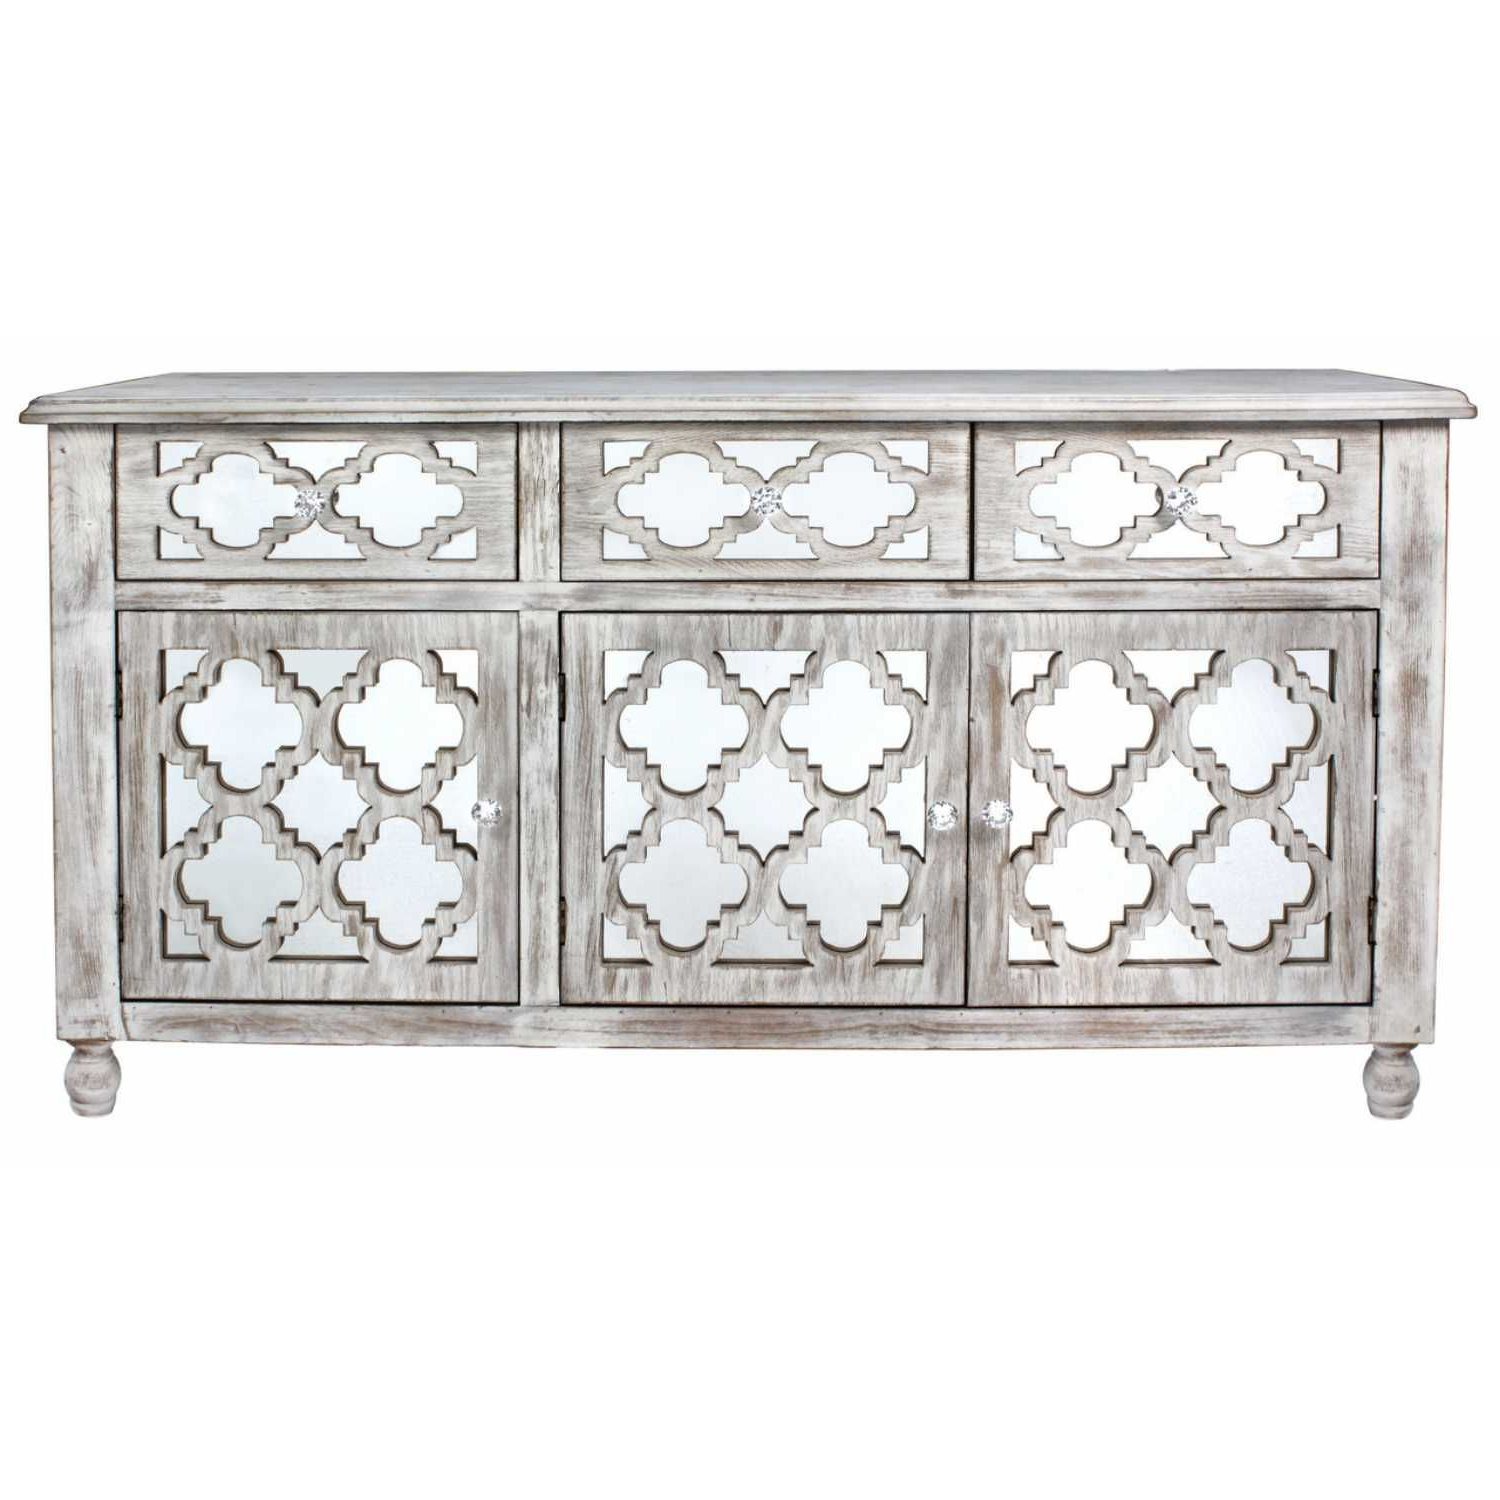 White Wash 3 Door 3 Drawer Sideboards In Latest Marrakech Washed Ash Modern Mirrored Glass 3 Door 3 Drawer Cabinet (View 14 of 20)